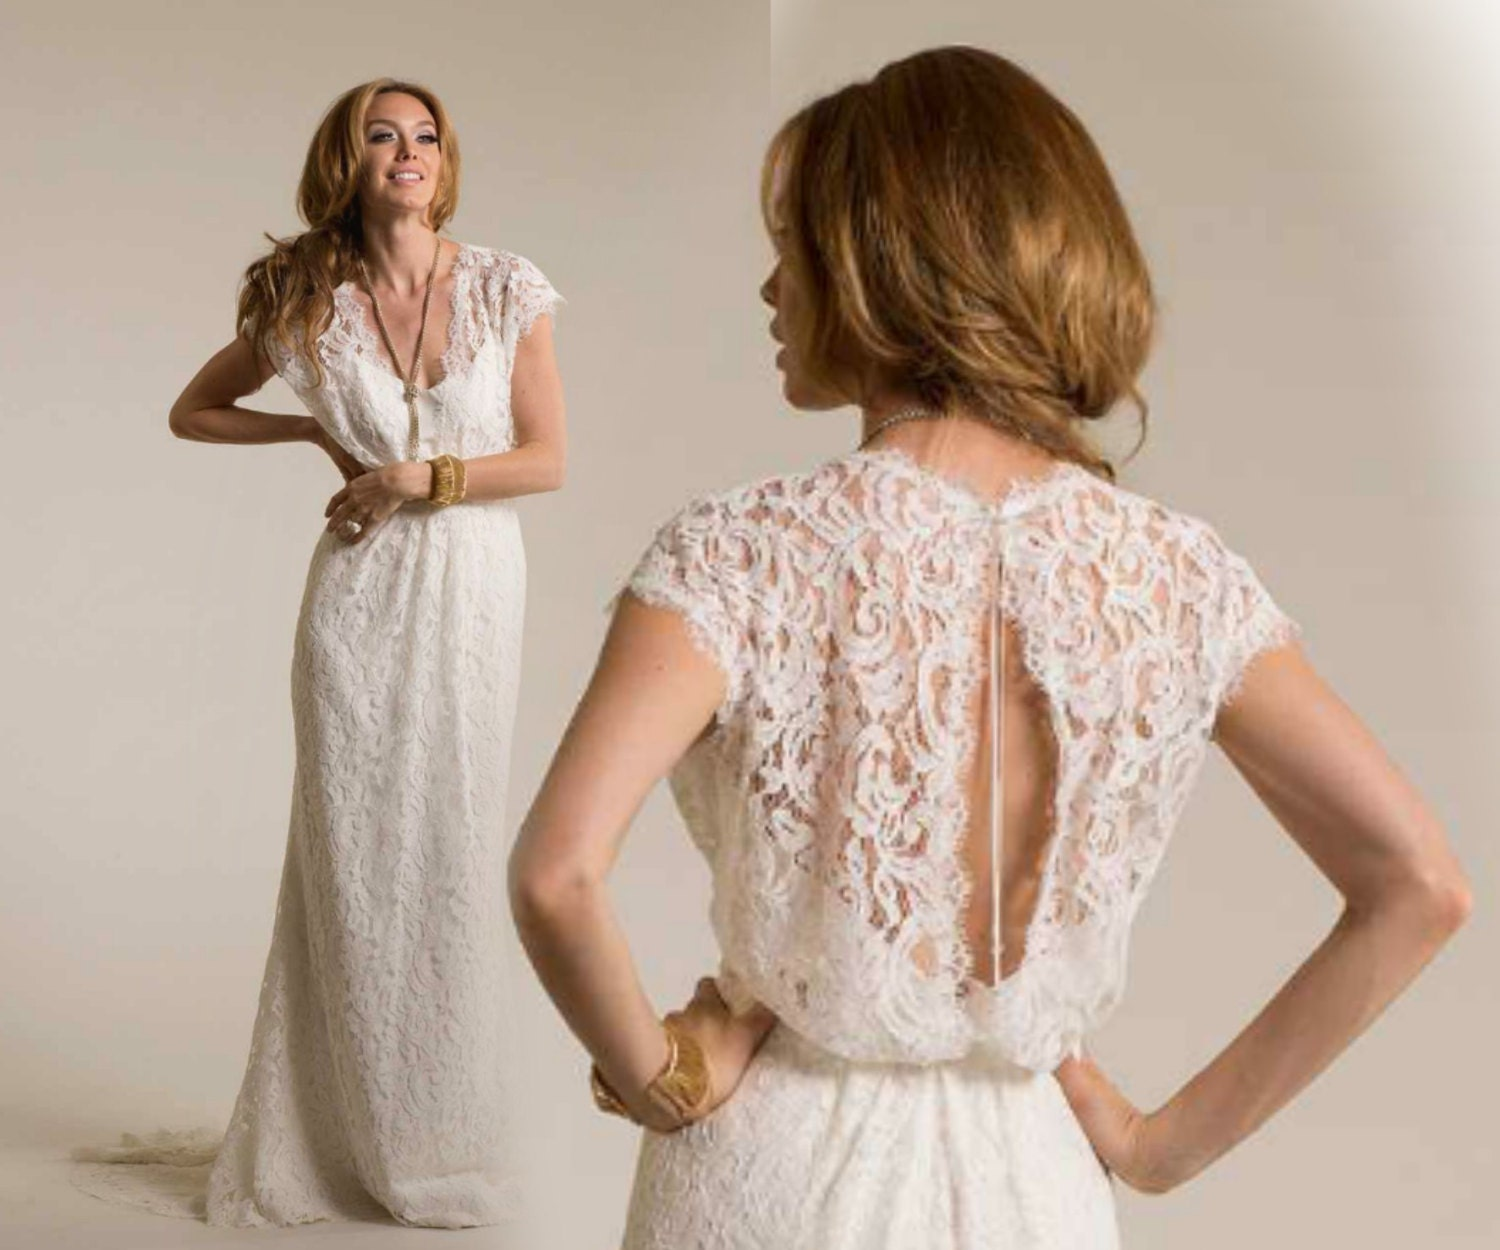 Boho Lace Wedding Dress Etsy : Neck lace wedding dress boho by bailynnbounique